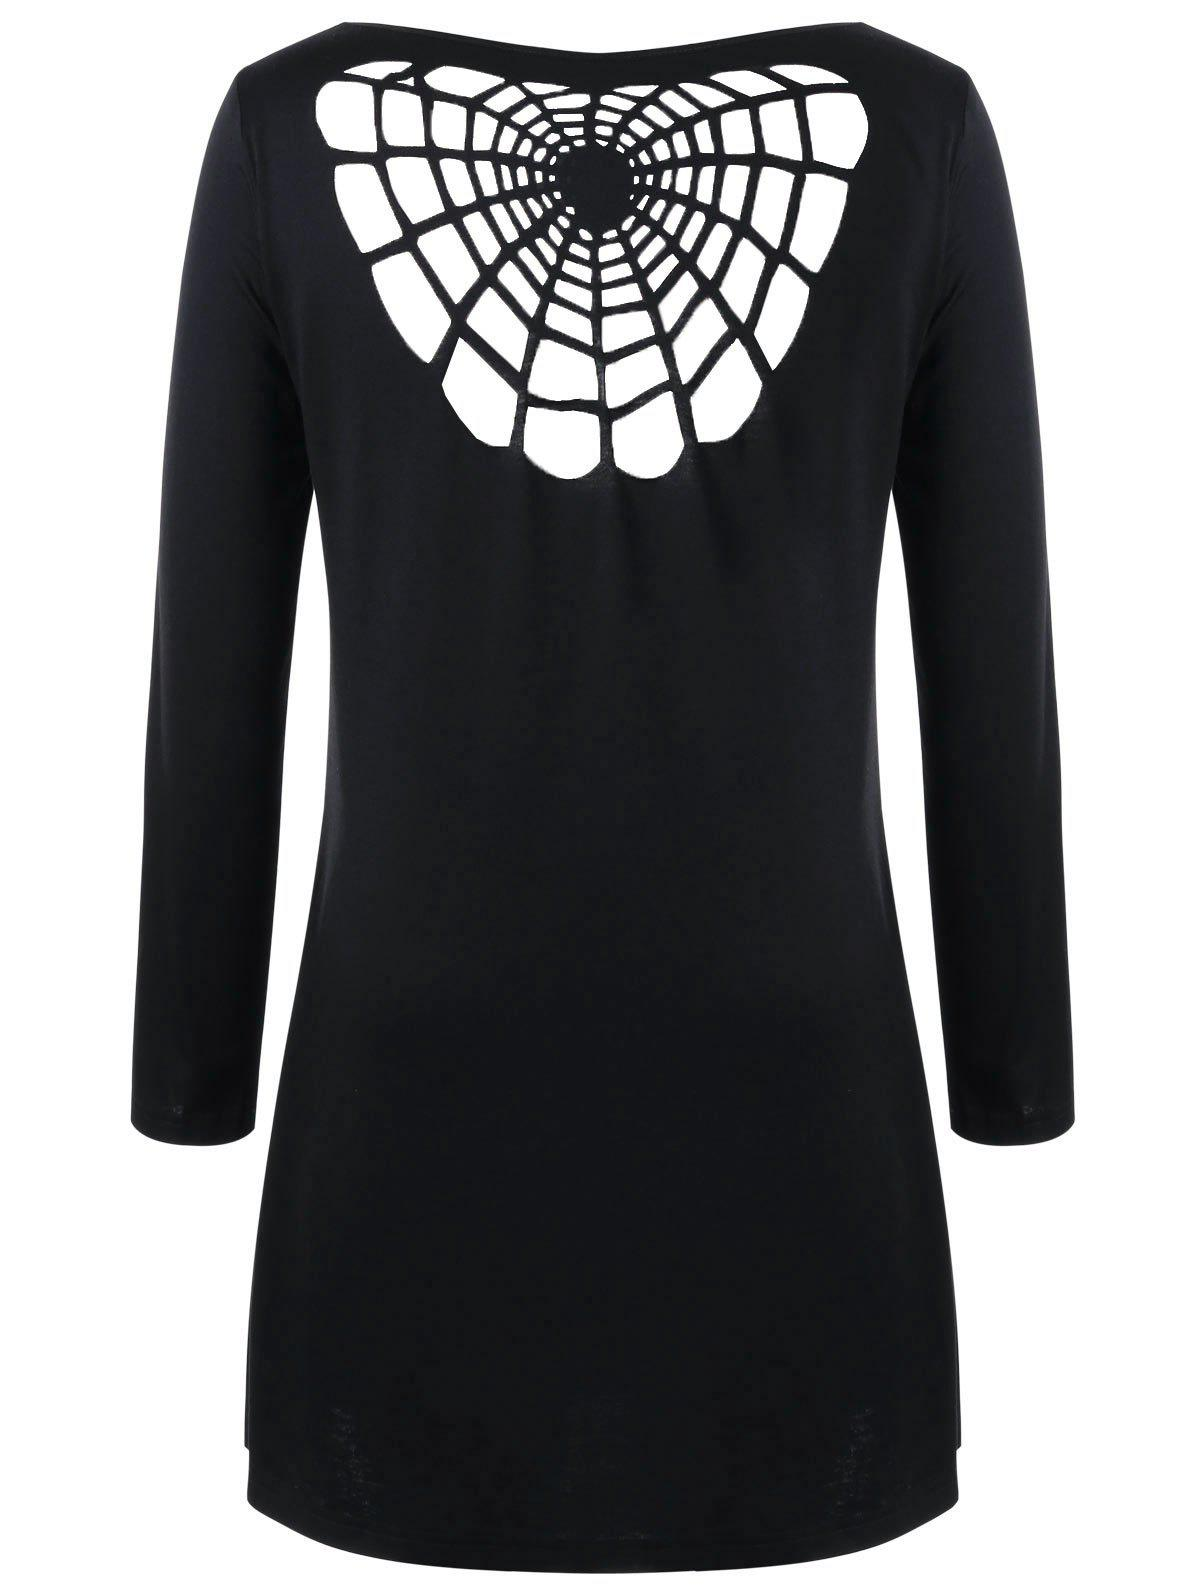 Shops Halloween Plus Size Openwork Spider Tunic Top